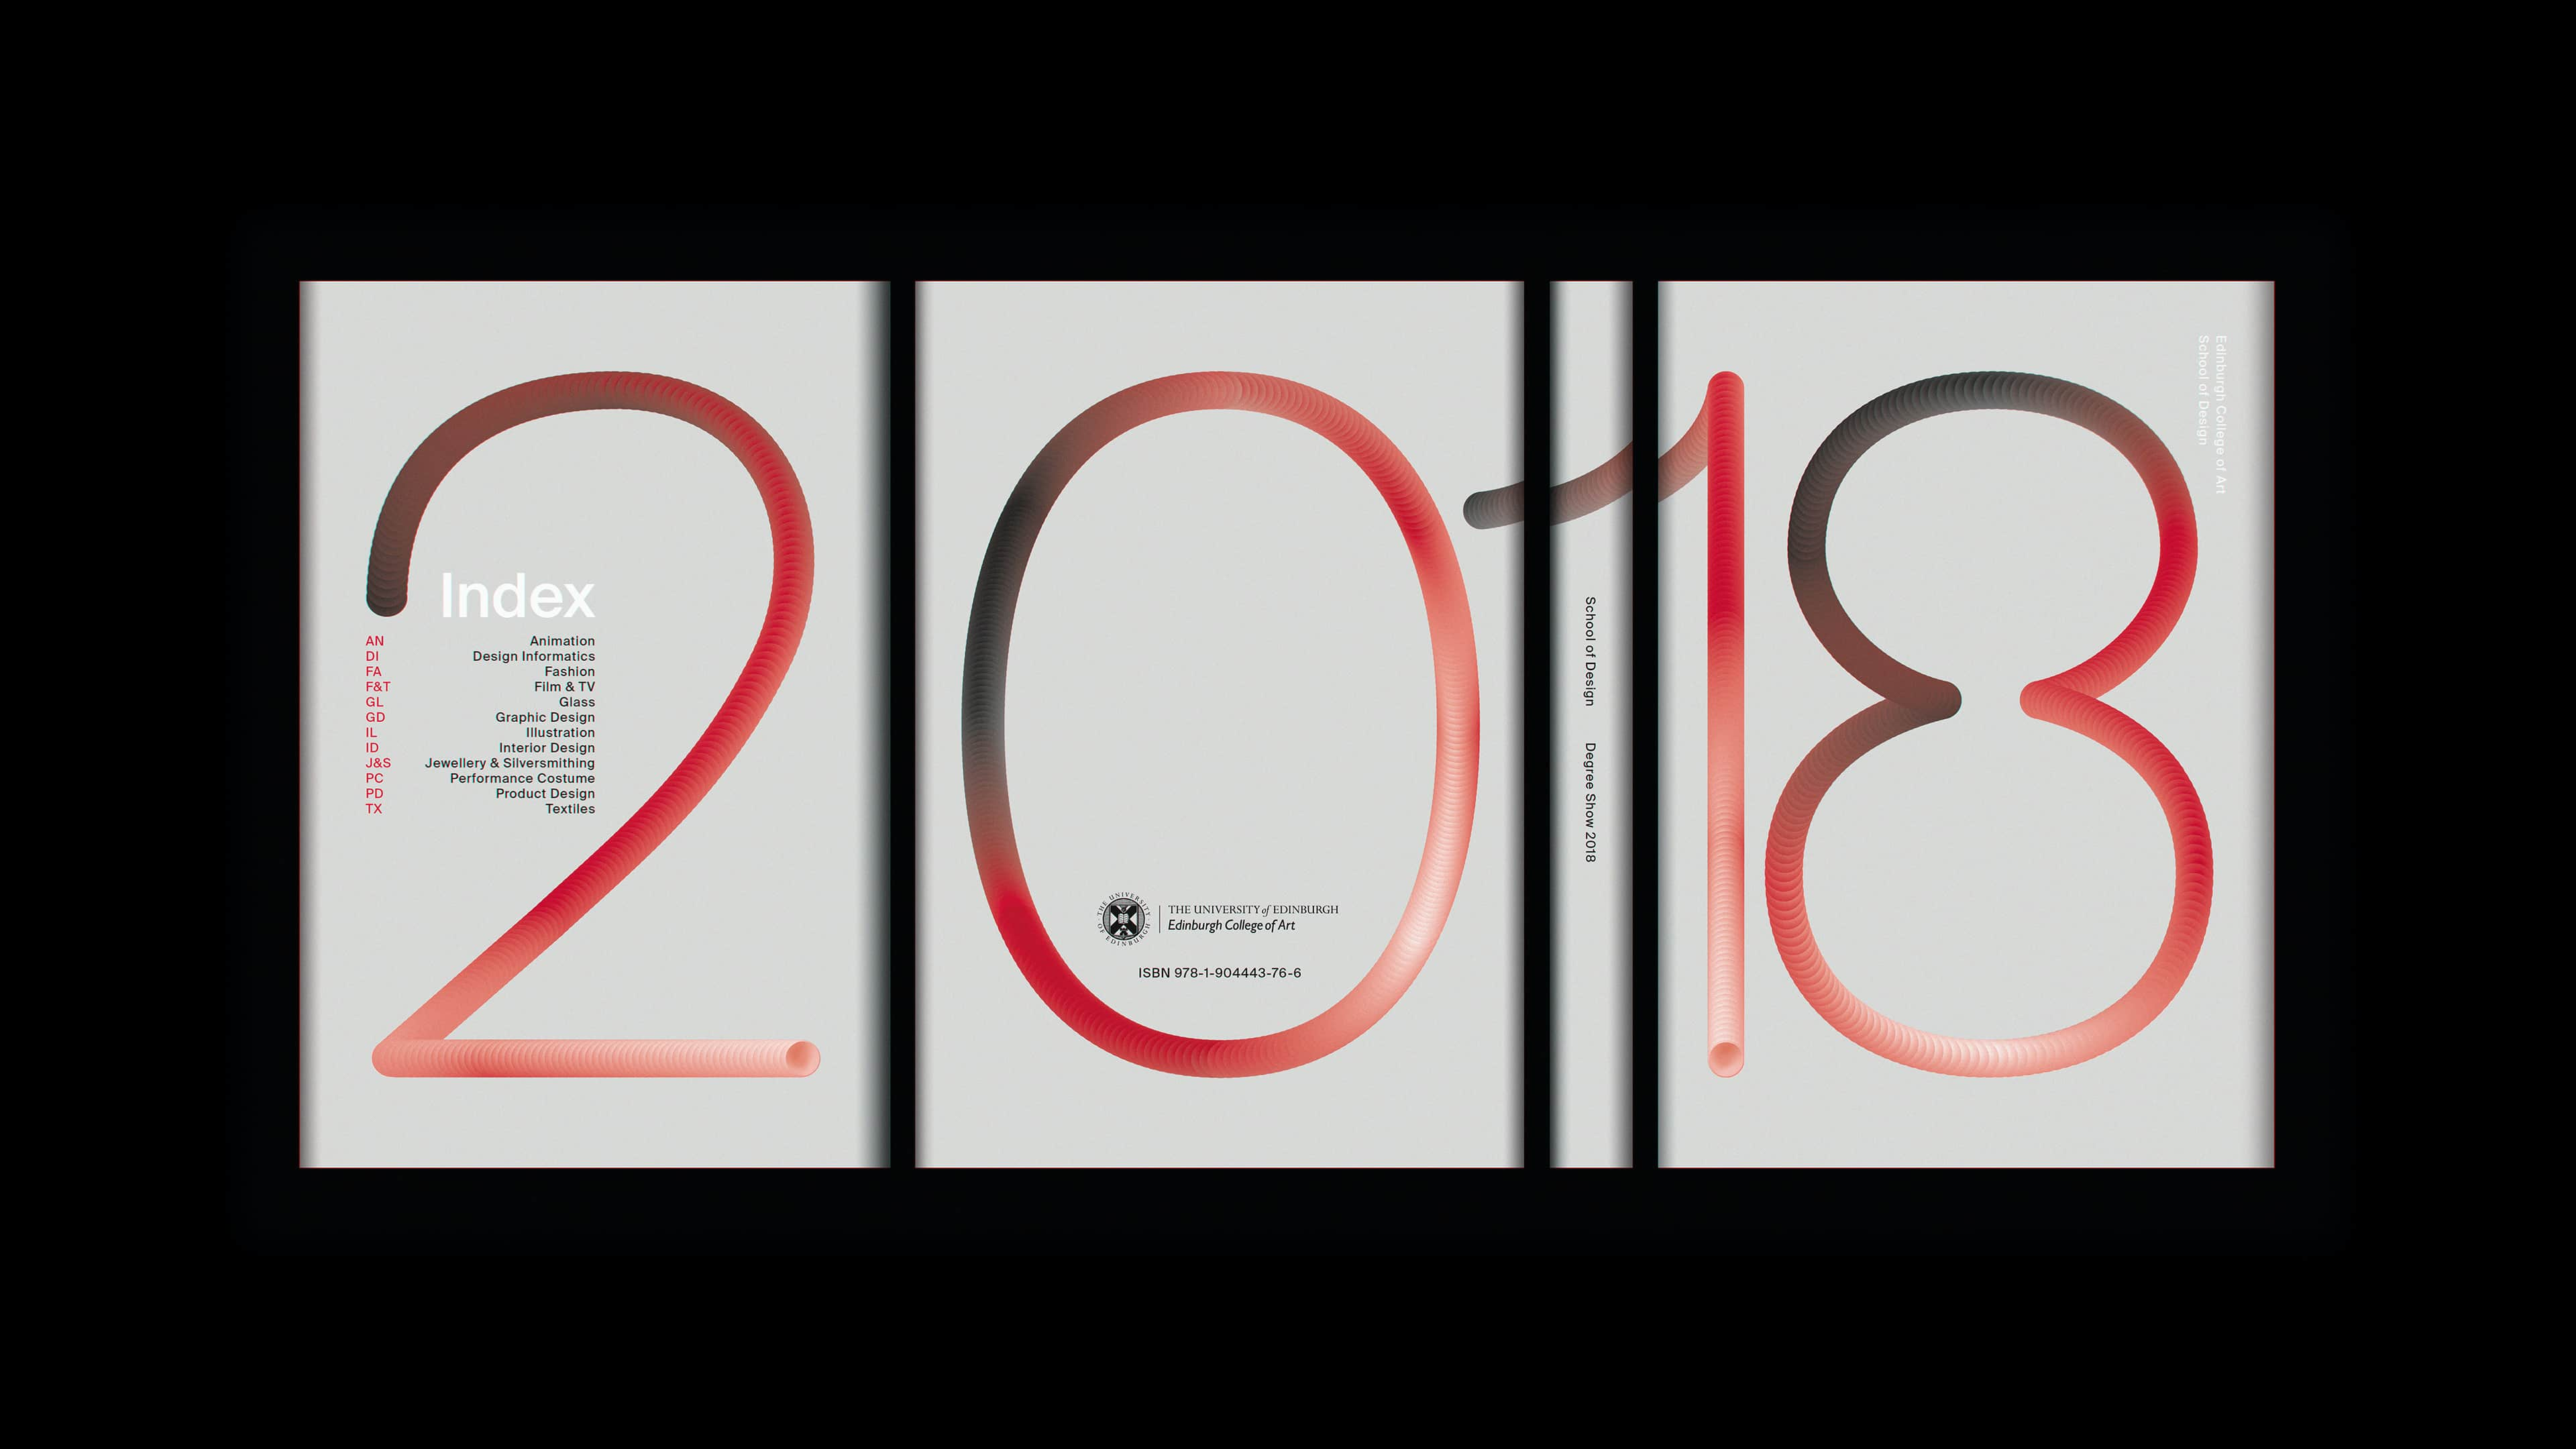 Print and exhibition design for the graduating 2018 student cohort from the Edinburgh College of Art's School of Design, incorporating show signage and a 260 page printed catalogue into a single celebration of artistic talent.